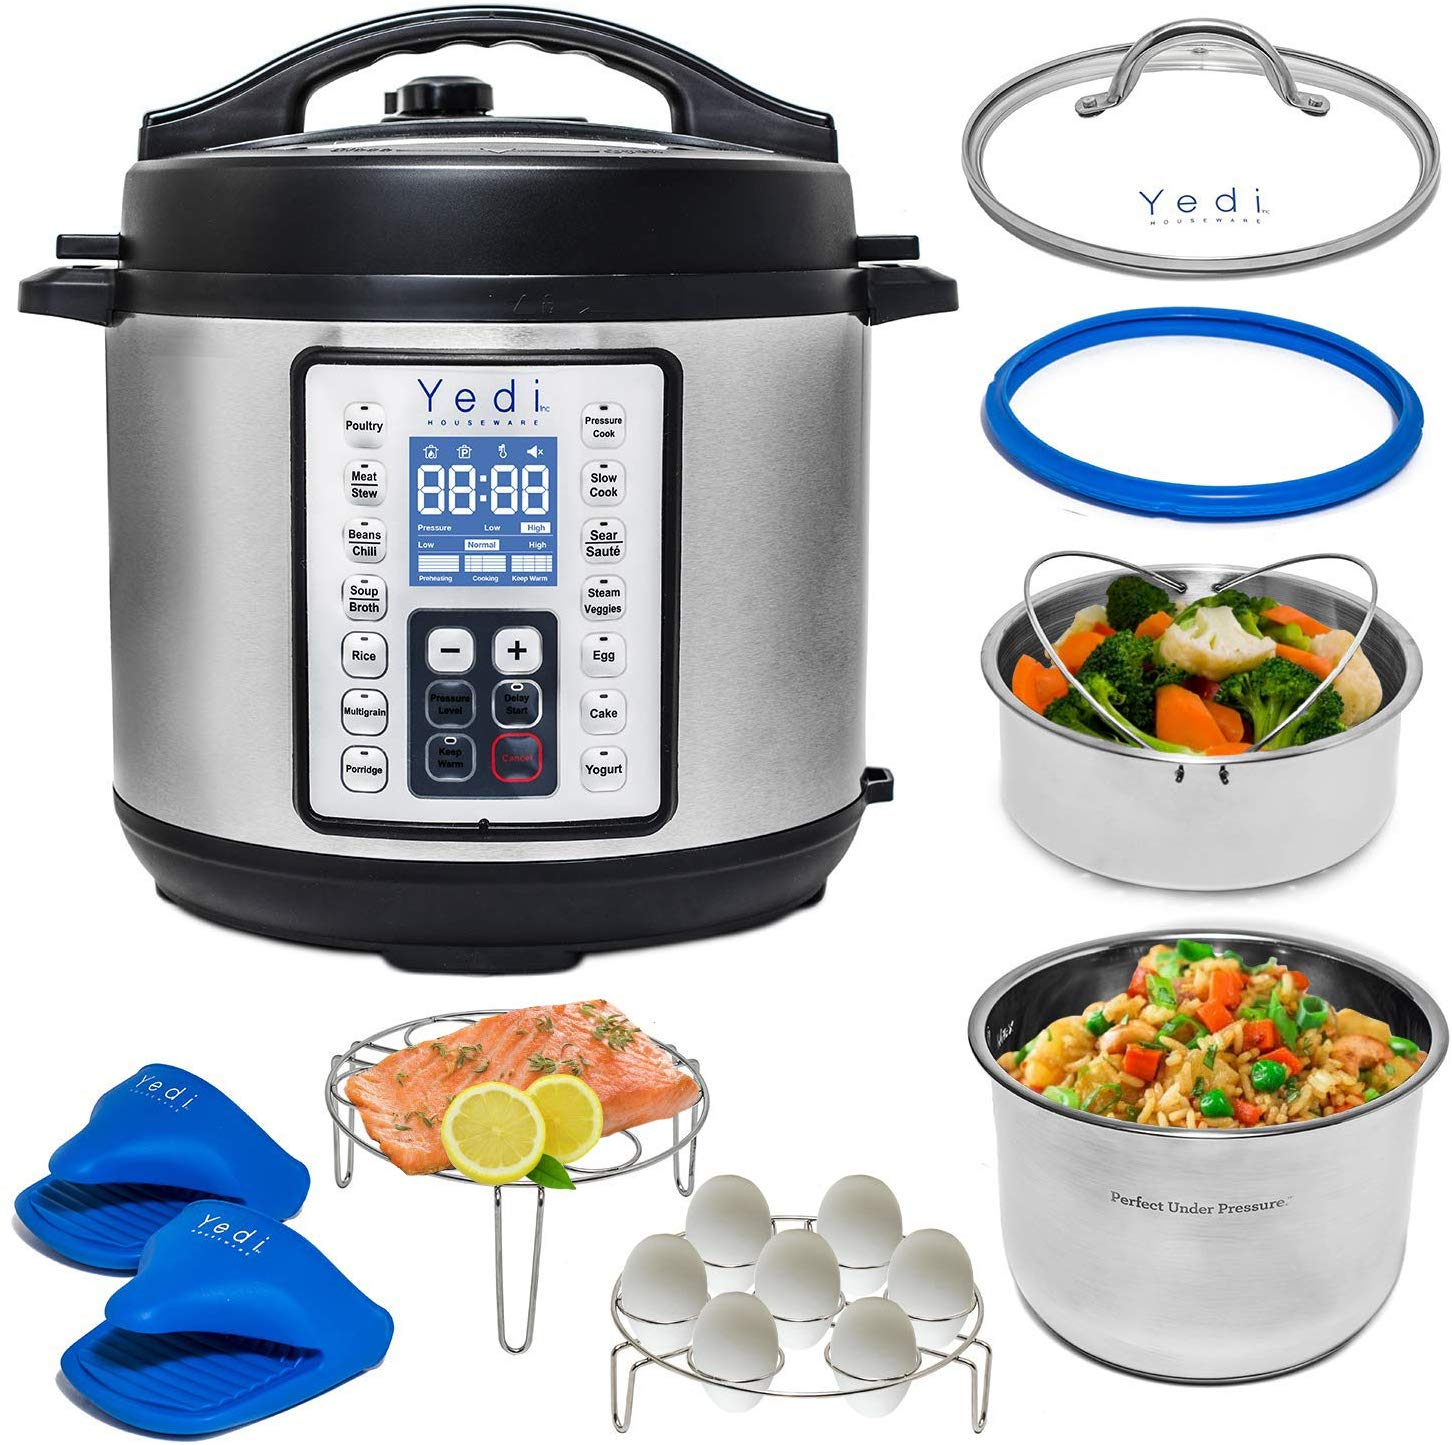 Yedi Houseware 9-in-1 Programmable Pressure Cooker, 8-Quart